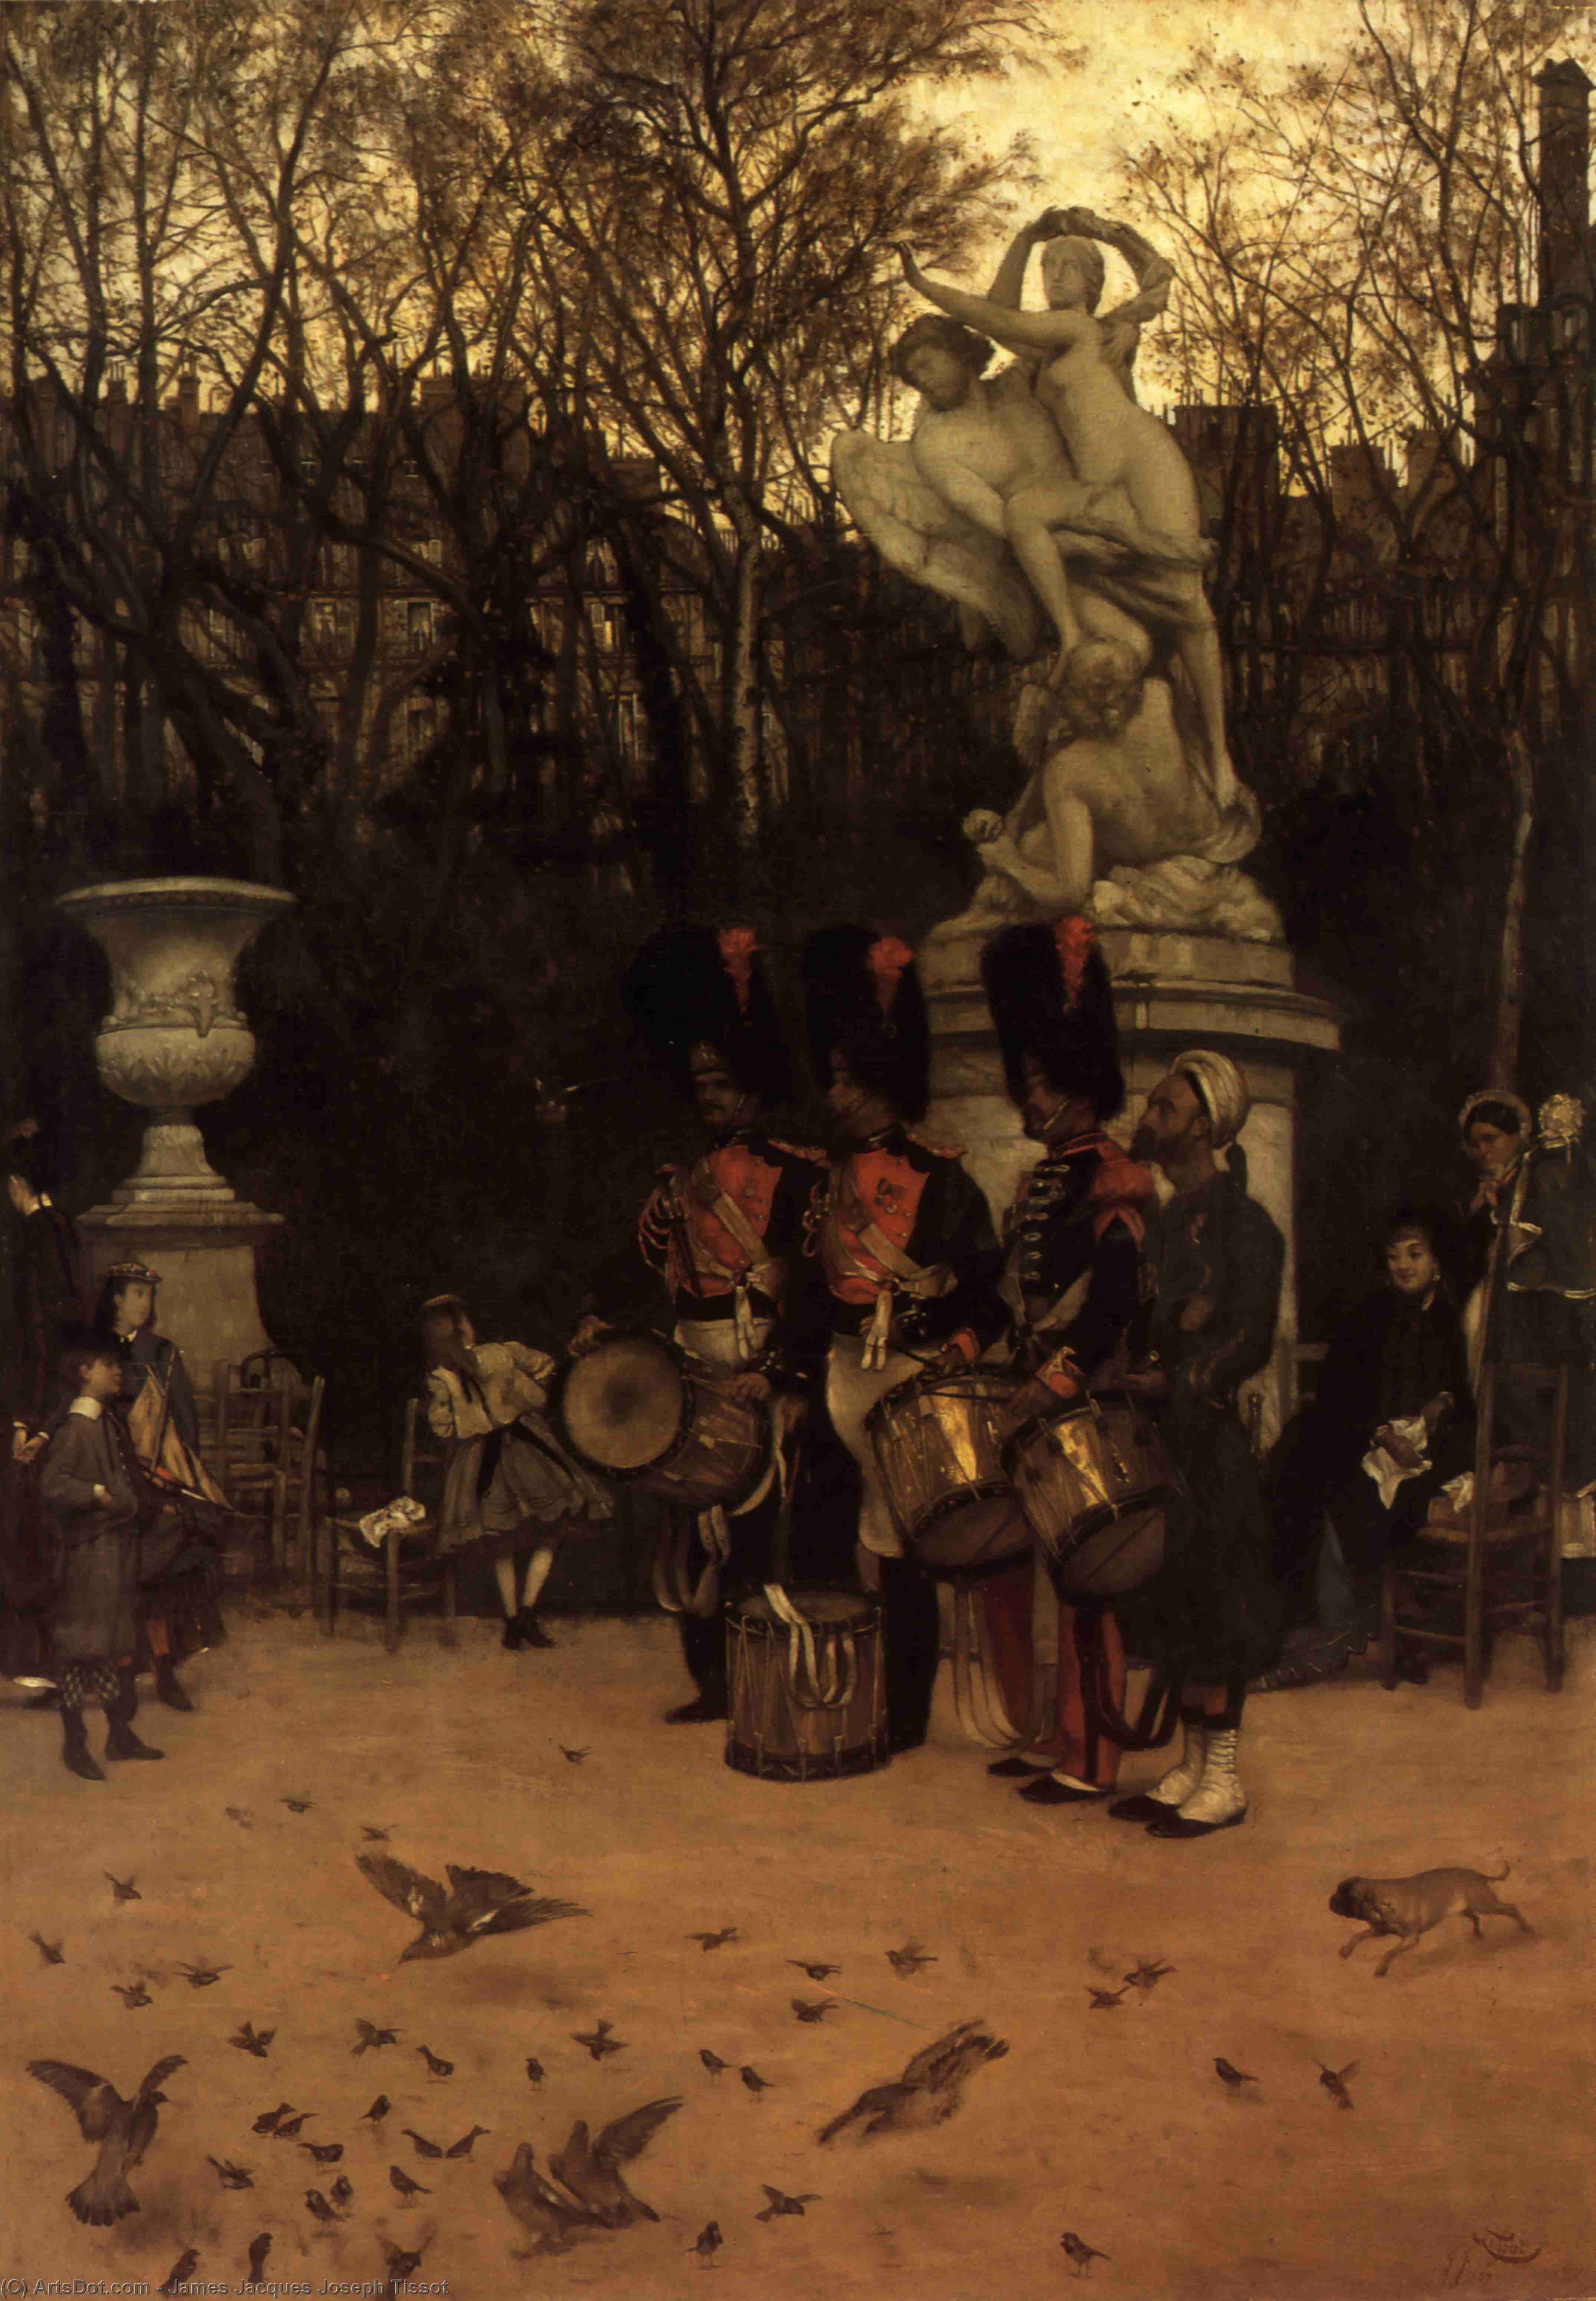 Wikioo.org - The Encyclopedia of Fine Arts - Painting, Artwork by James Jacques Joseph Tissot - Beating the Retreat in the Tuileries Gardens